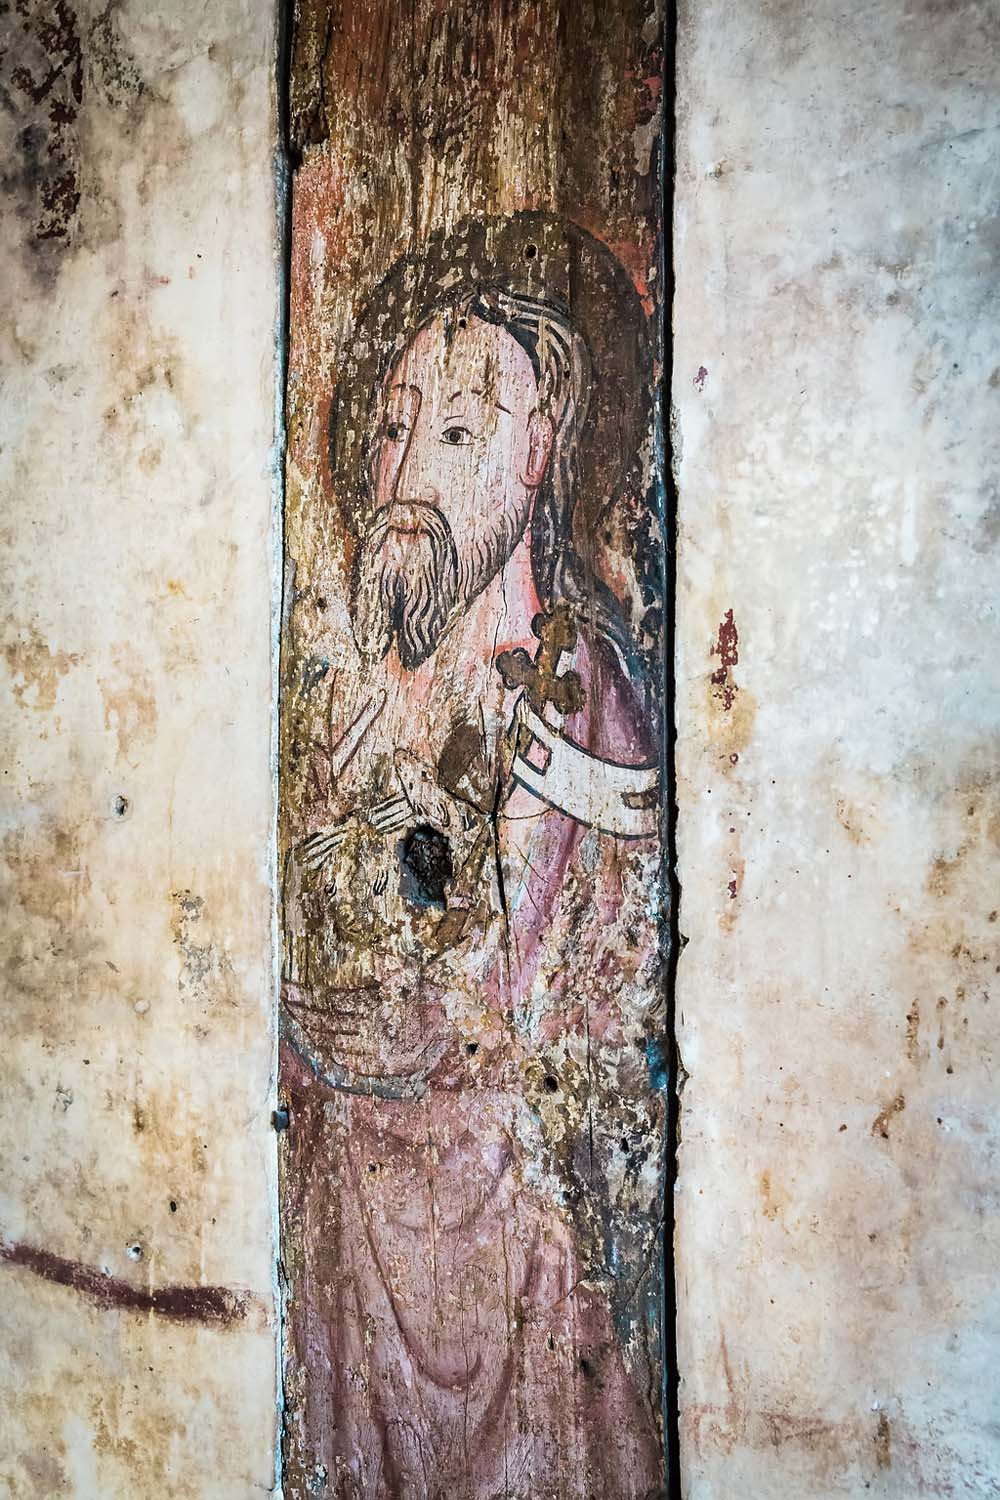 close up of a painting on a wall showing a bearded figure